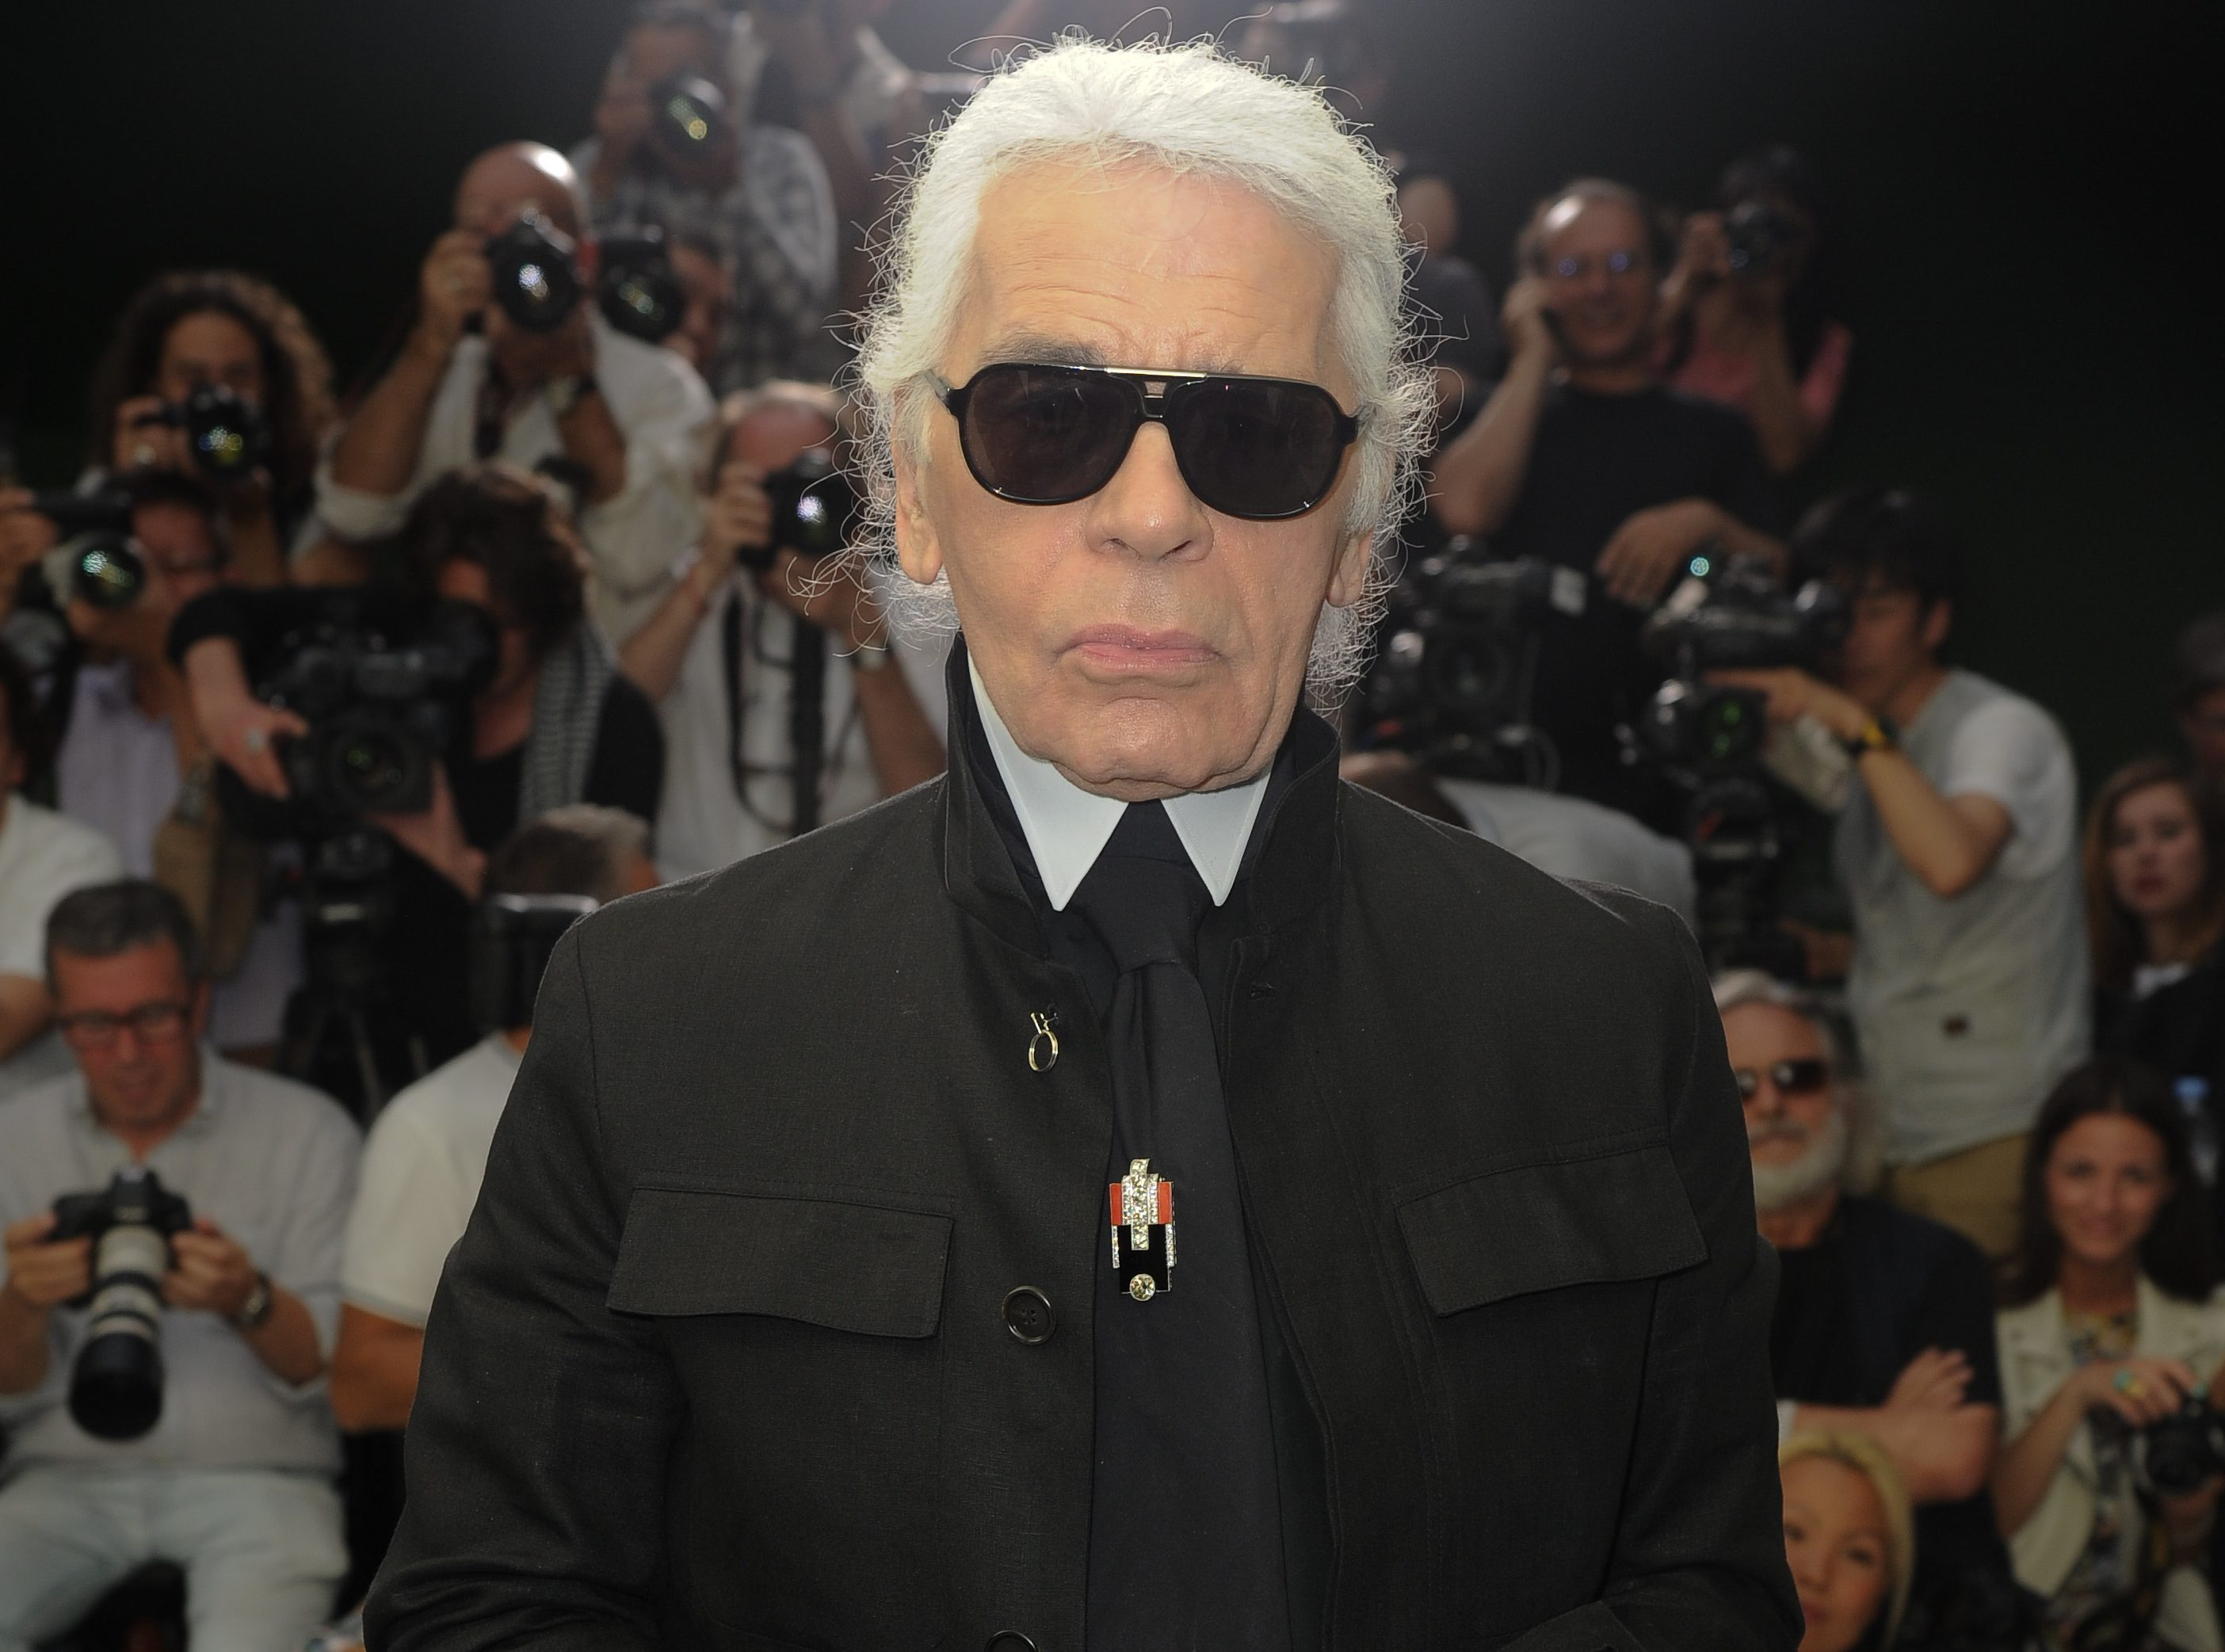 Karl Lagerfeld 'fed up' with #MeToo movement: 'The accusations have become toxic'